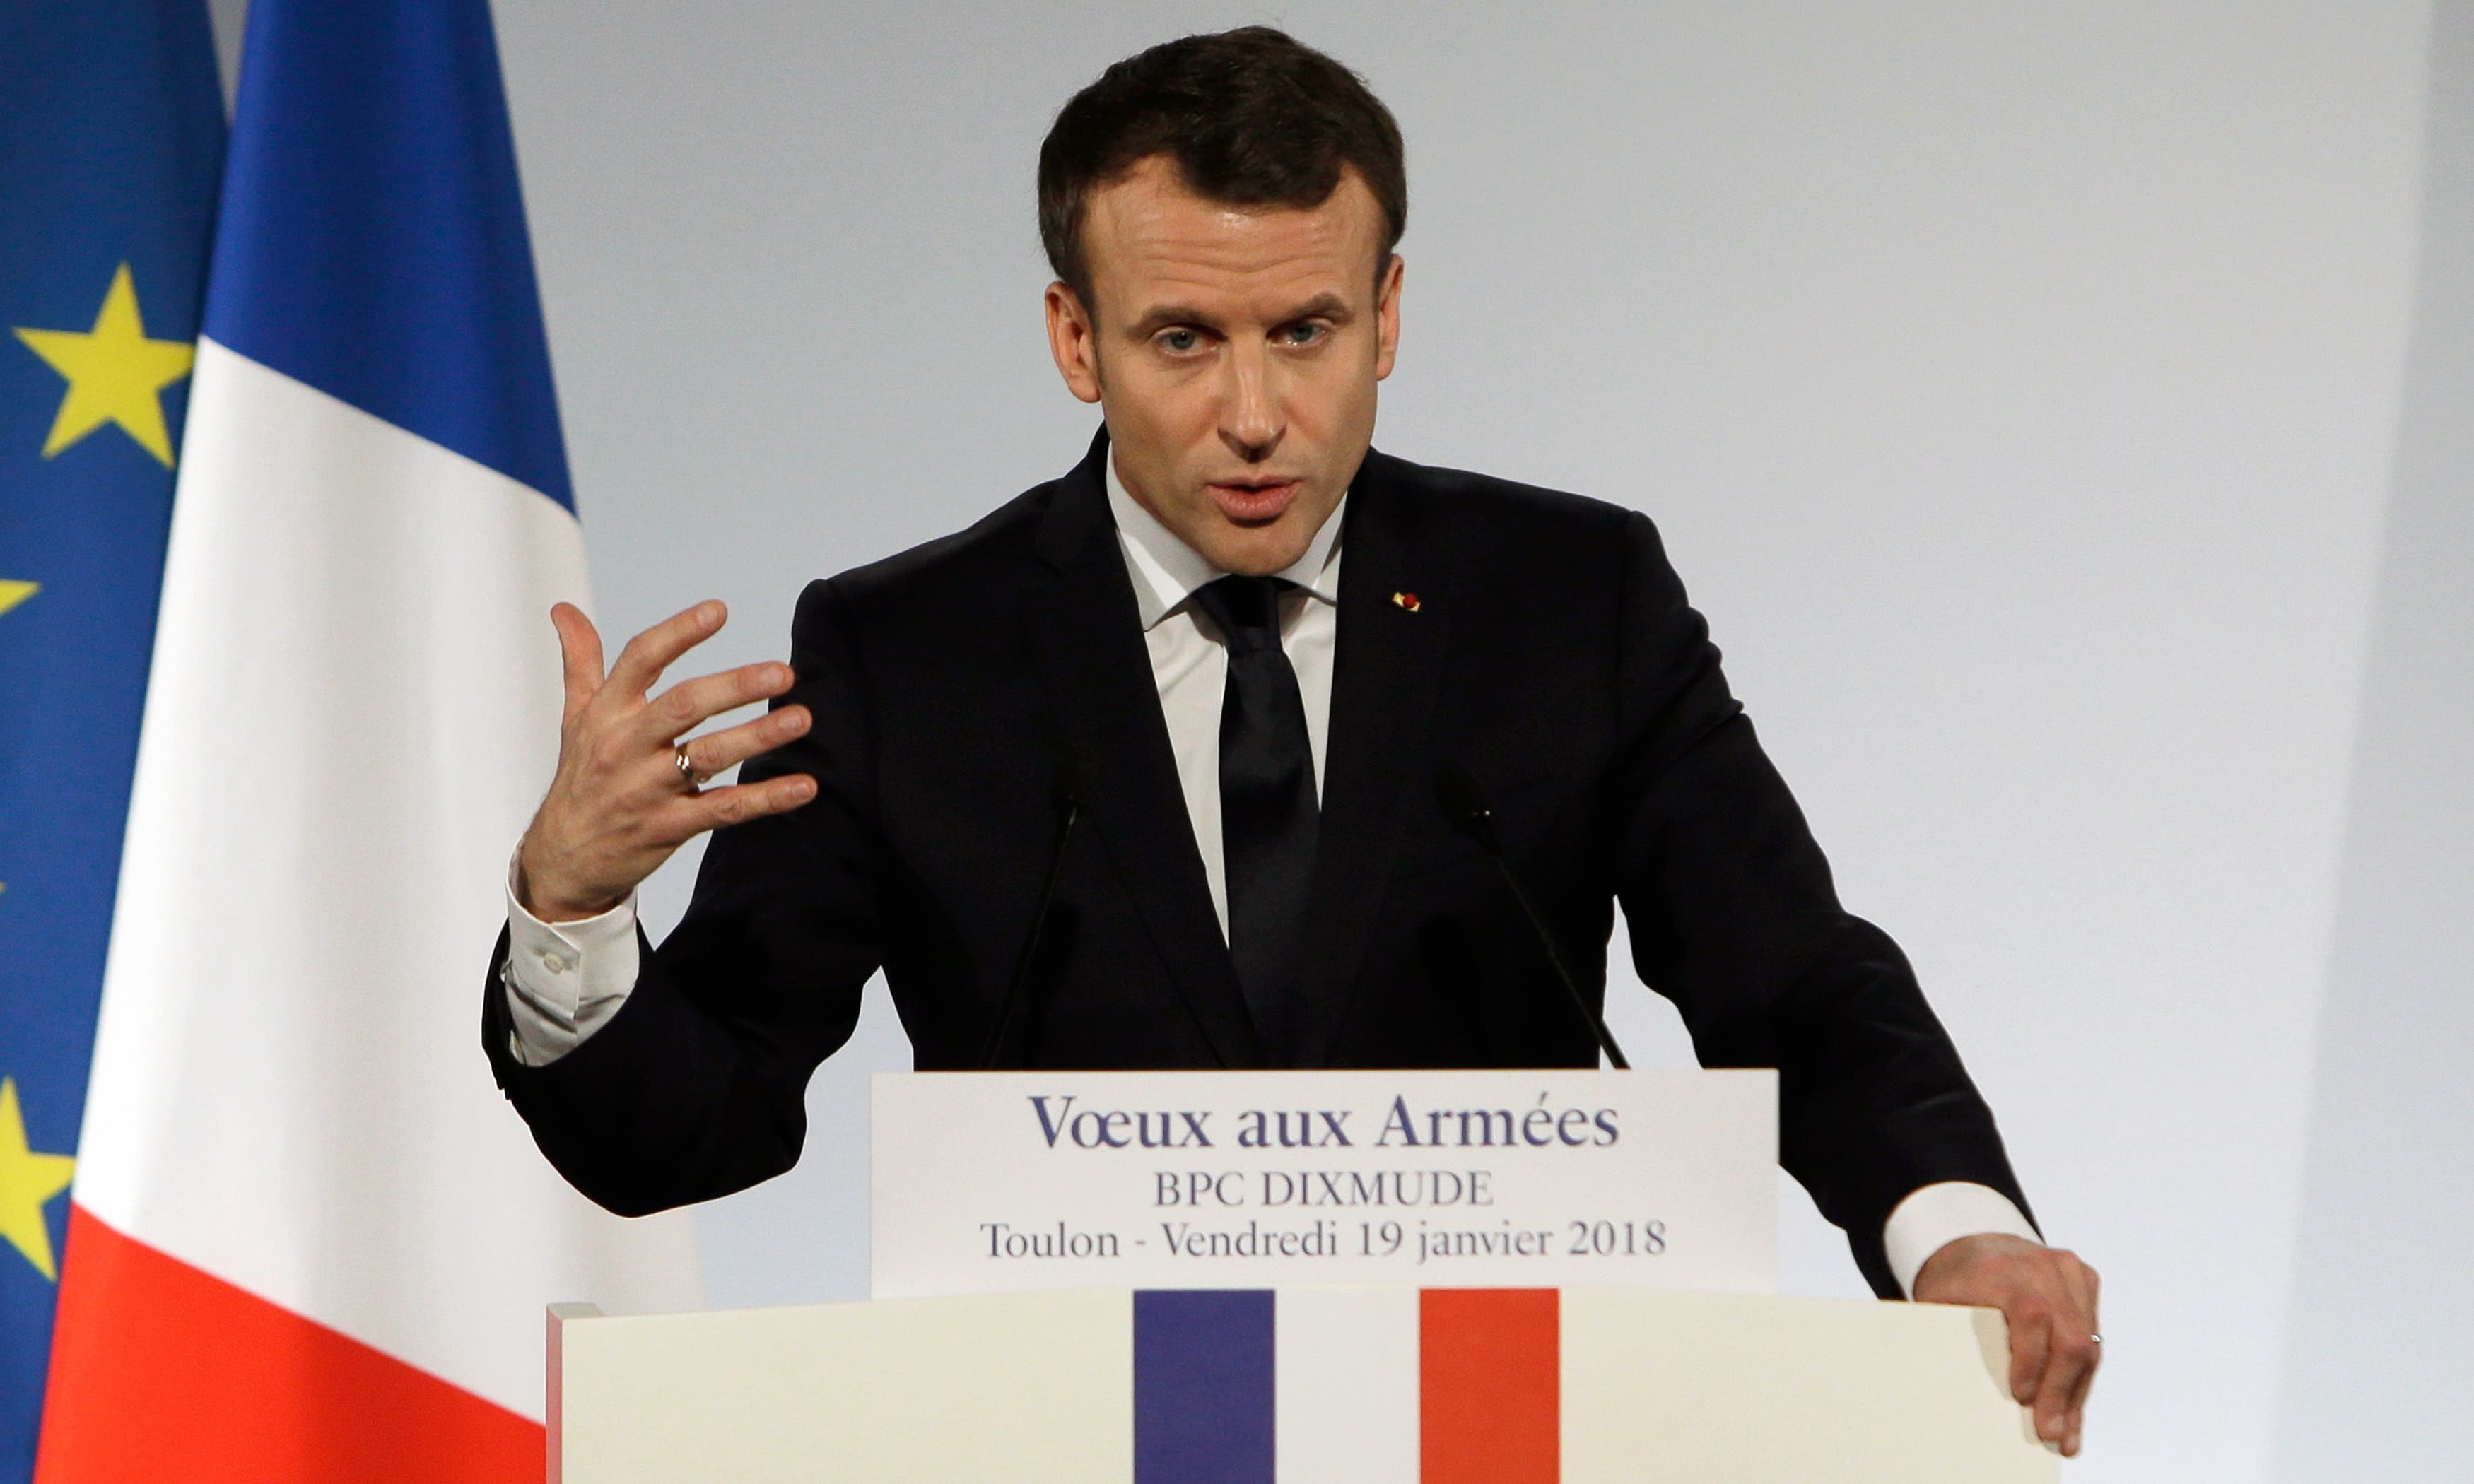 """Emmanuel Macron delivers a speech to present his New Year's wishes to the armed forces aboard the French Mistral Class assault ship and helicopter carrier """"Dixmude"""" at the Toulon Naval Base in Toulon, southern France. —AFP"""